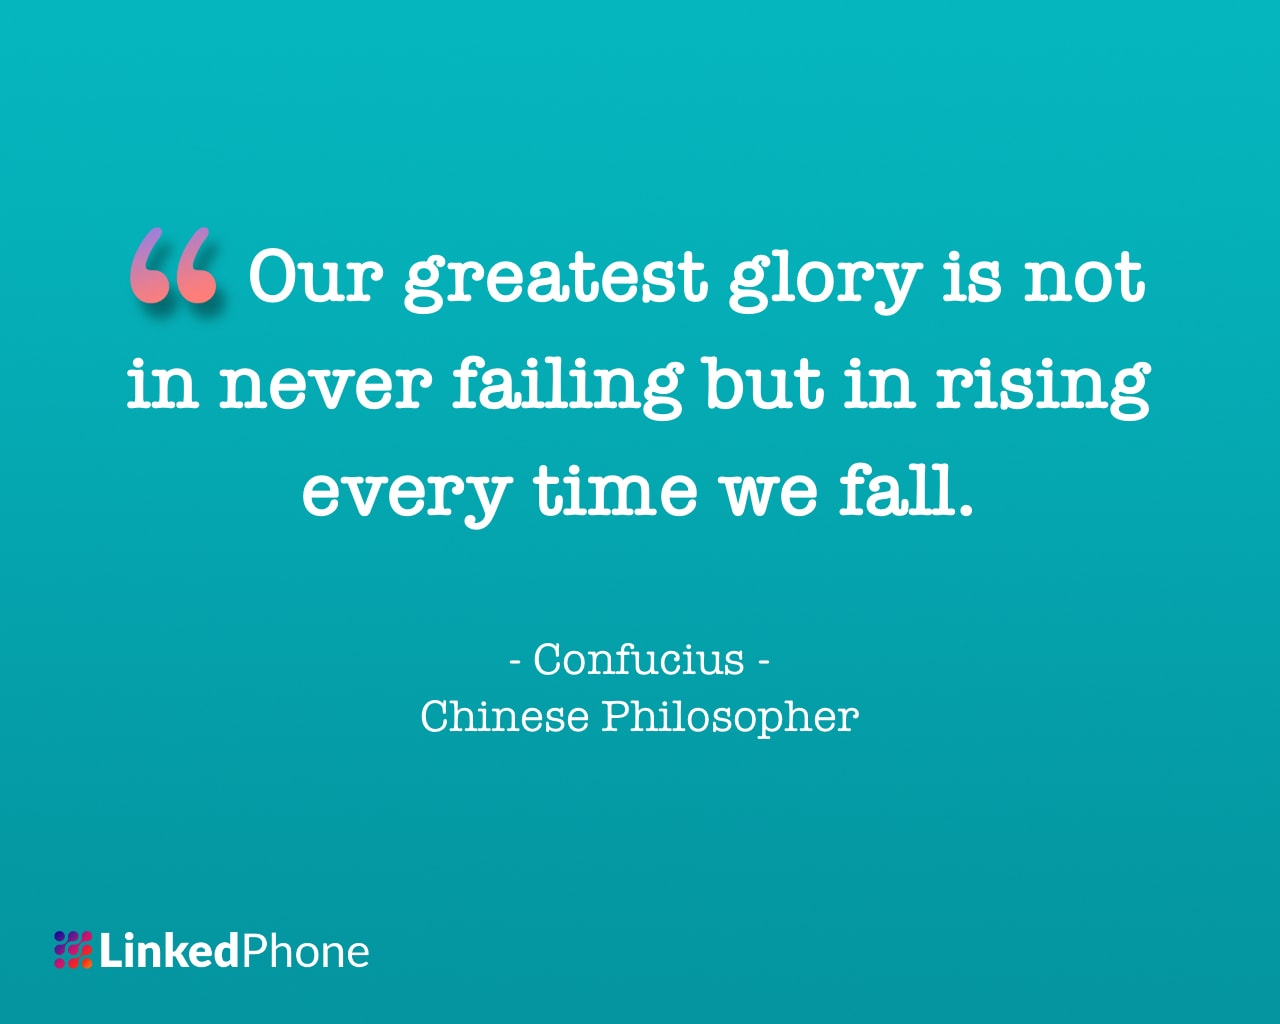 Confucius - Motivational Inspirational Quotes and Sayings: Our greatest glory is not in never failing but in rising every time we fall.